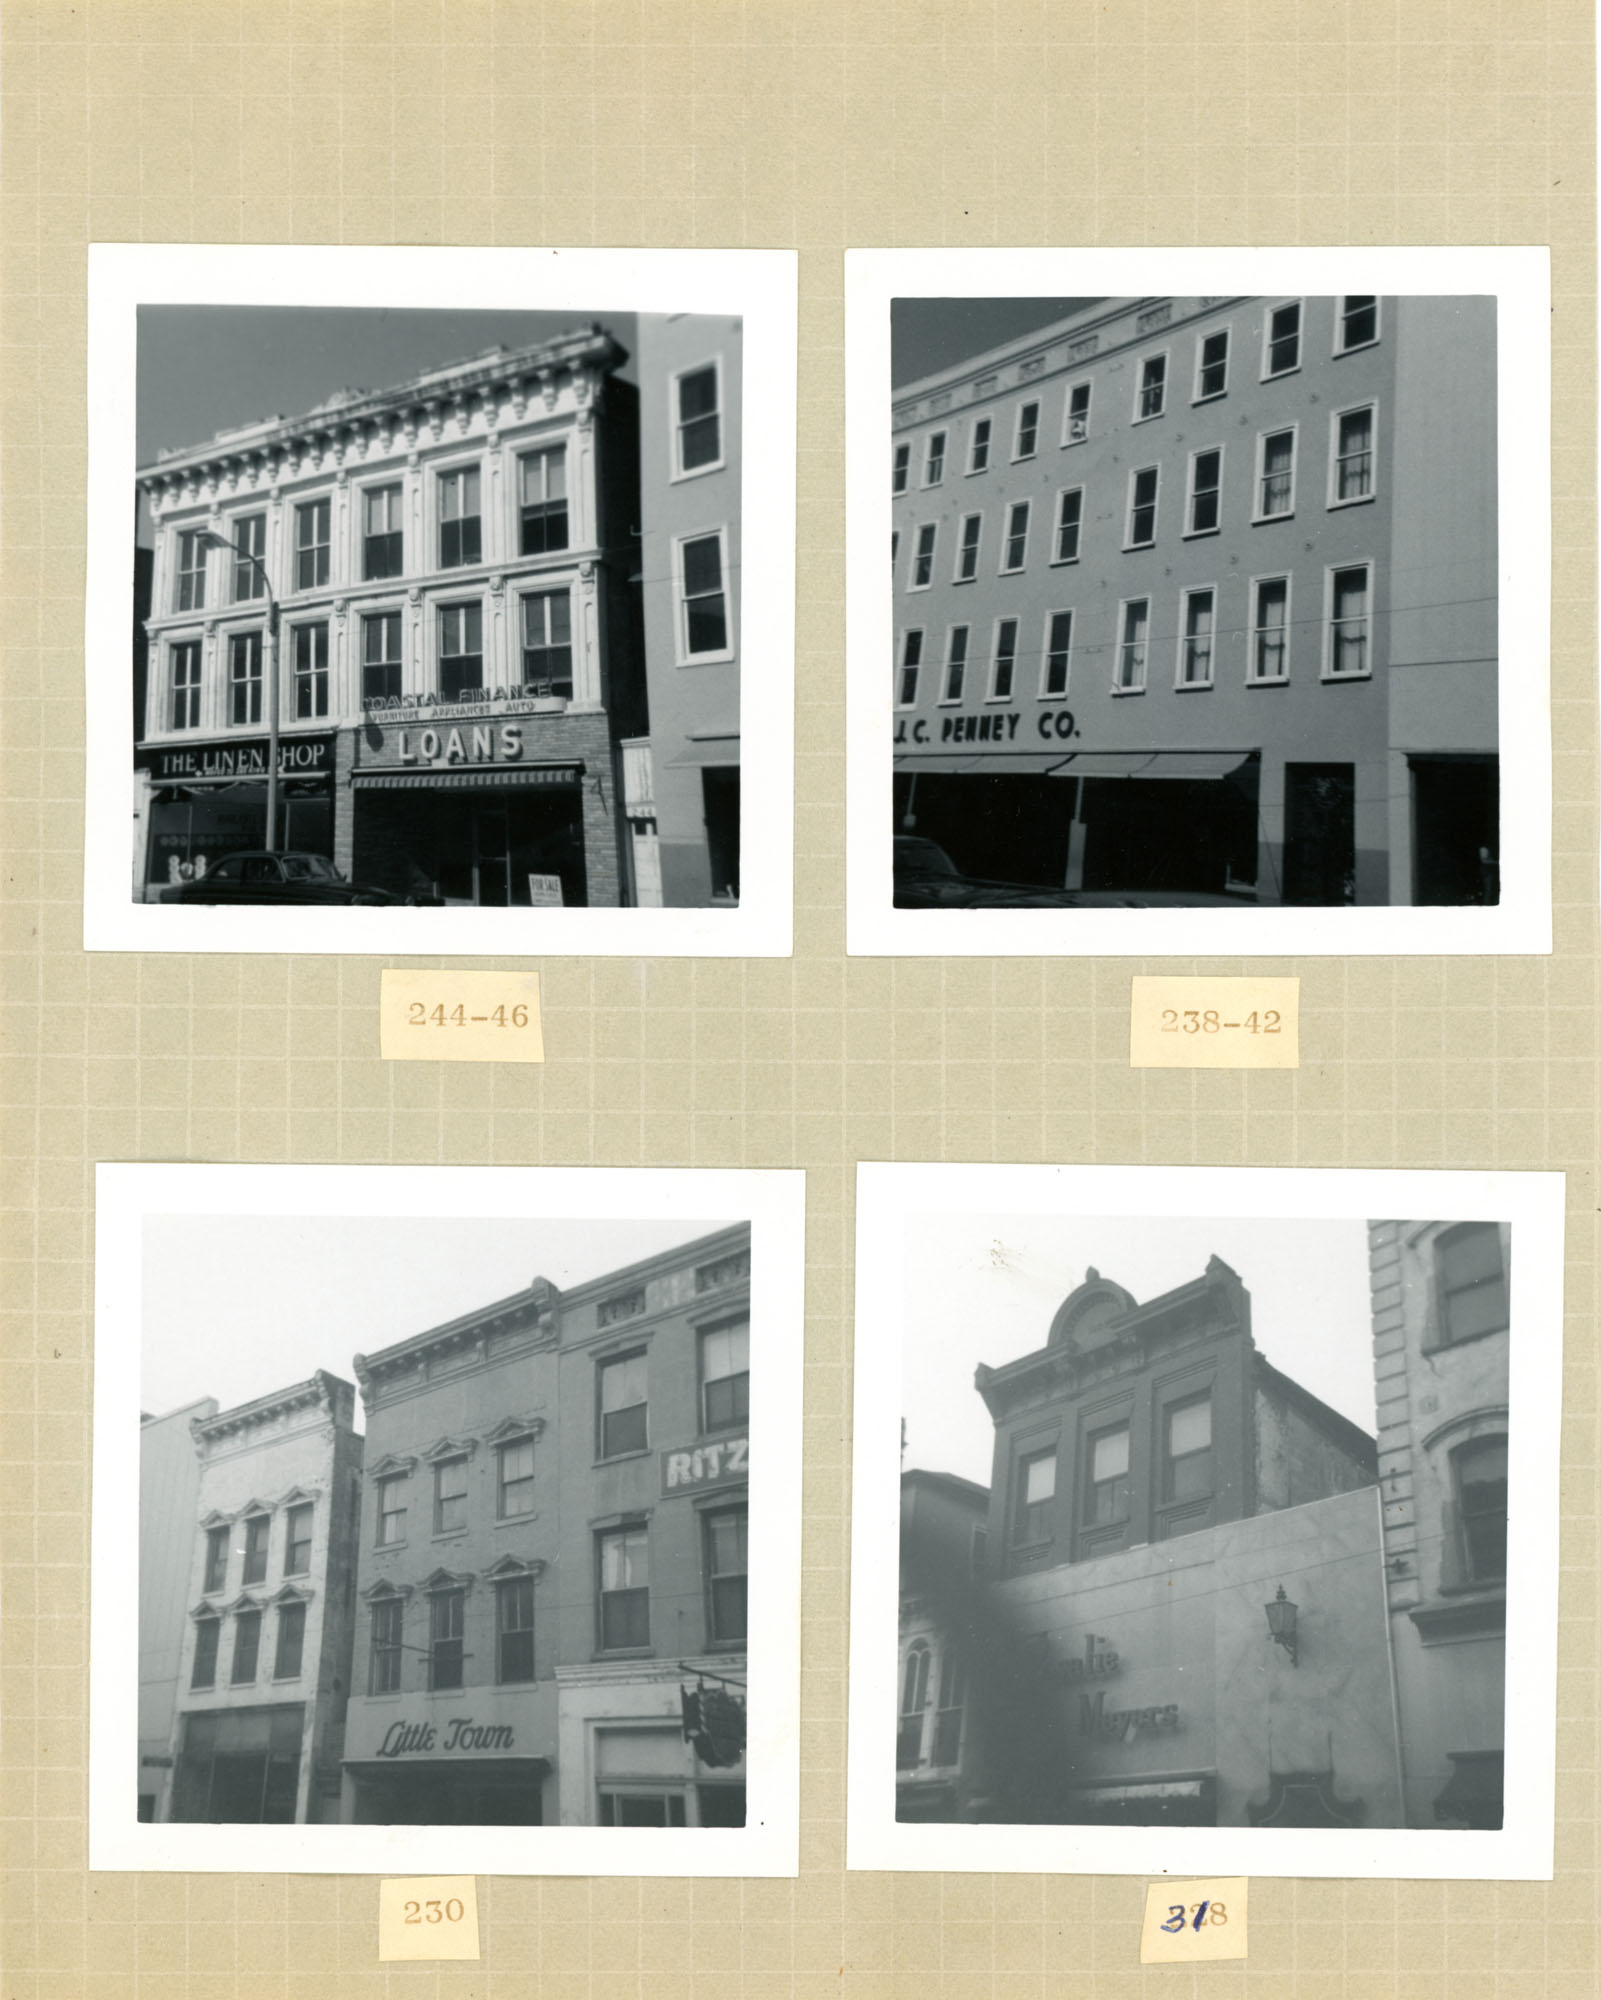 King Street Survey Photo Album, Page 7 (front): 226-246 King Street / 316 King Street